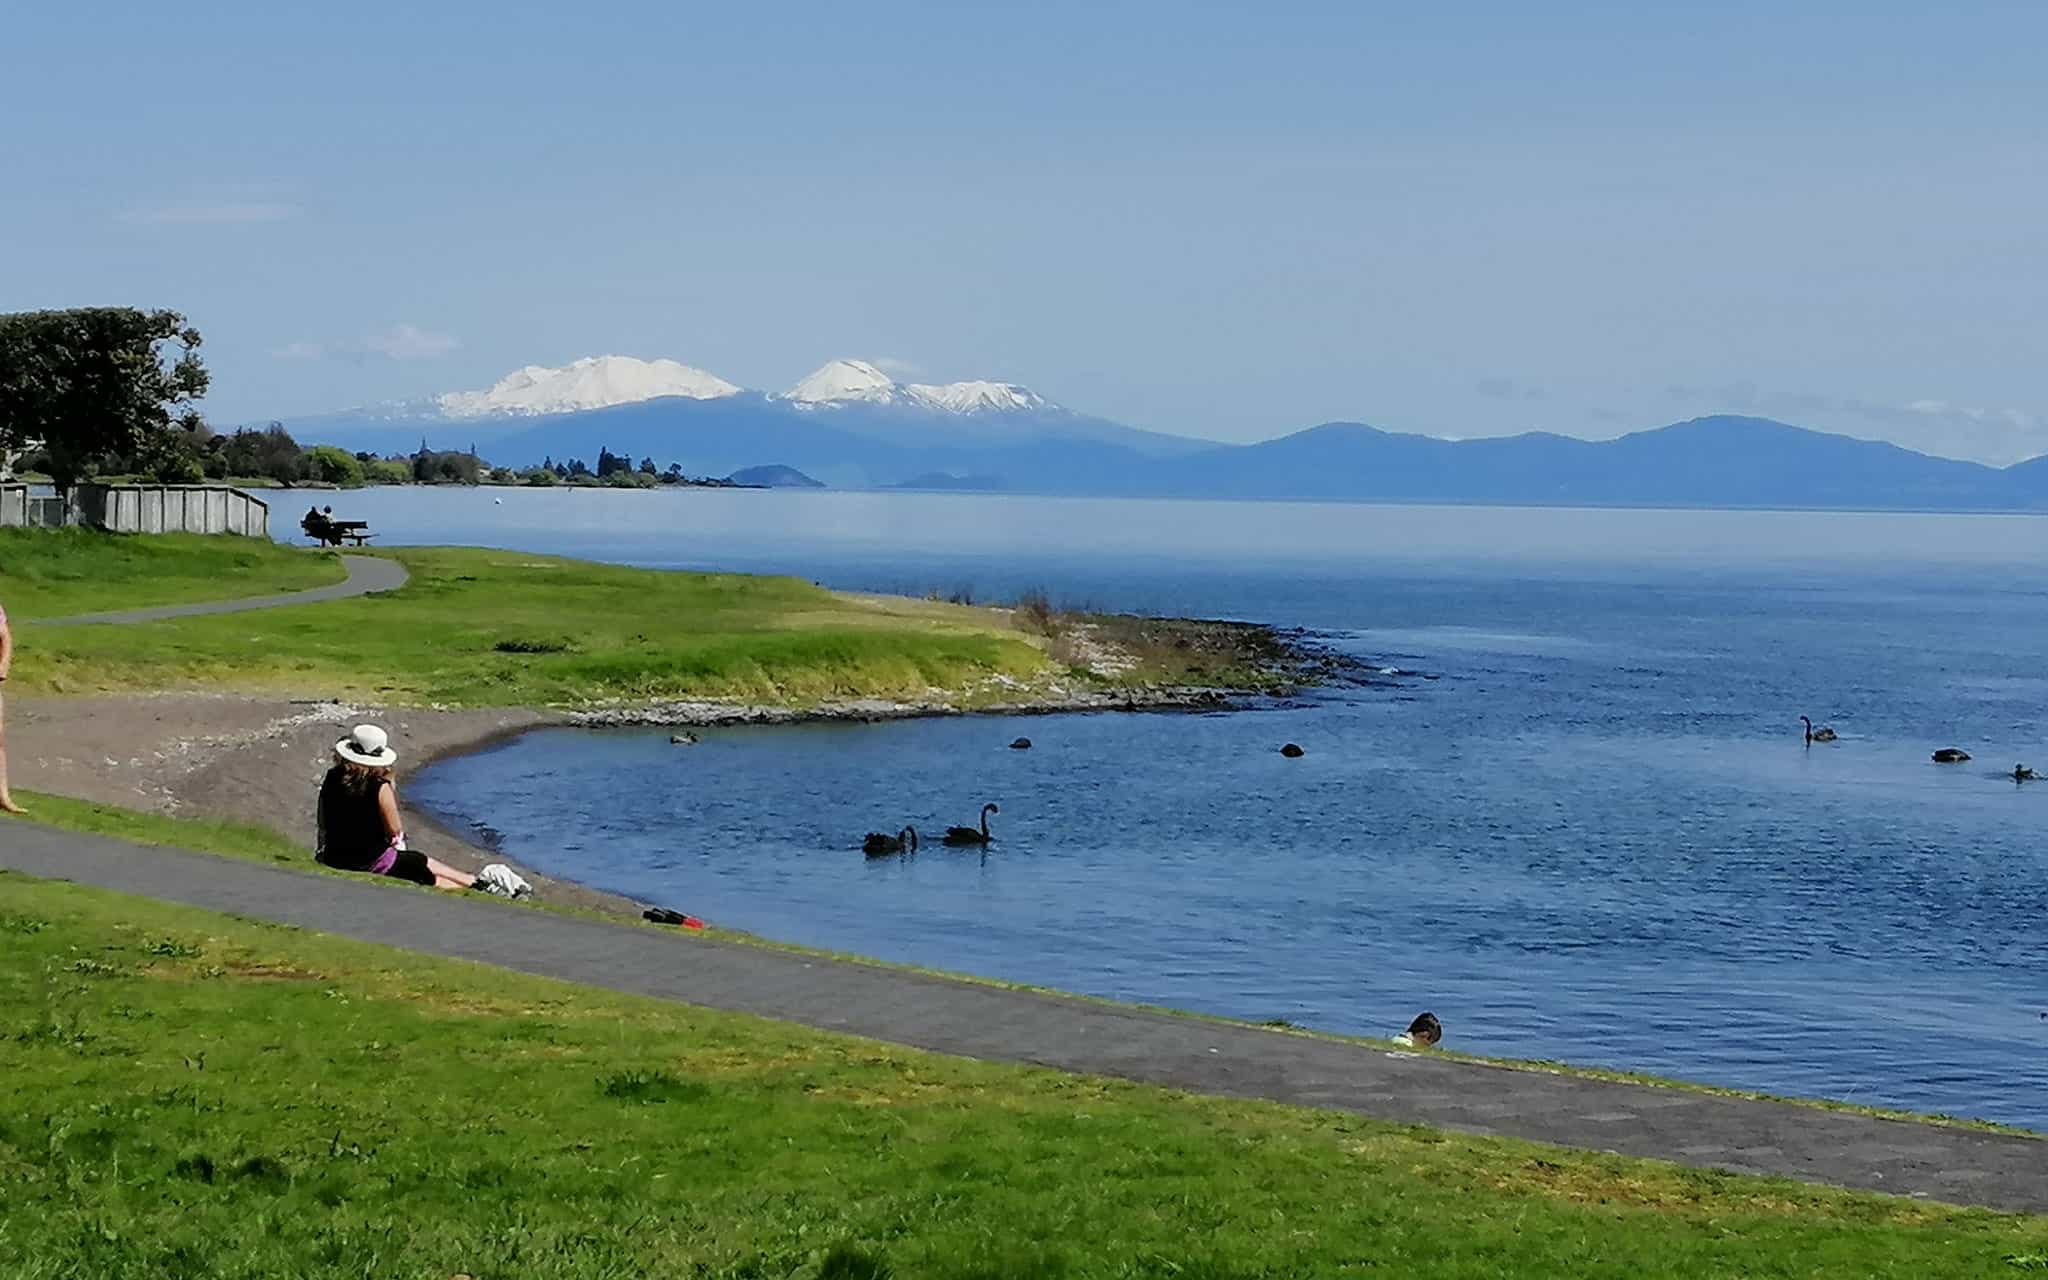 Stay-in-Taupo-Accommodation-Bed-and-Breakfast-in-Taupo-Waikato-New-Zealand-10